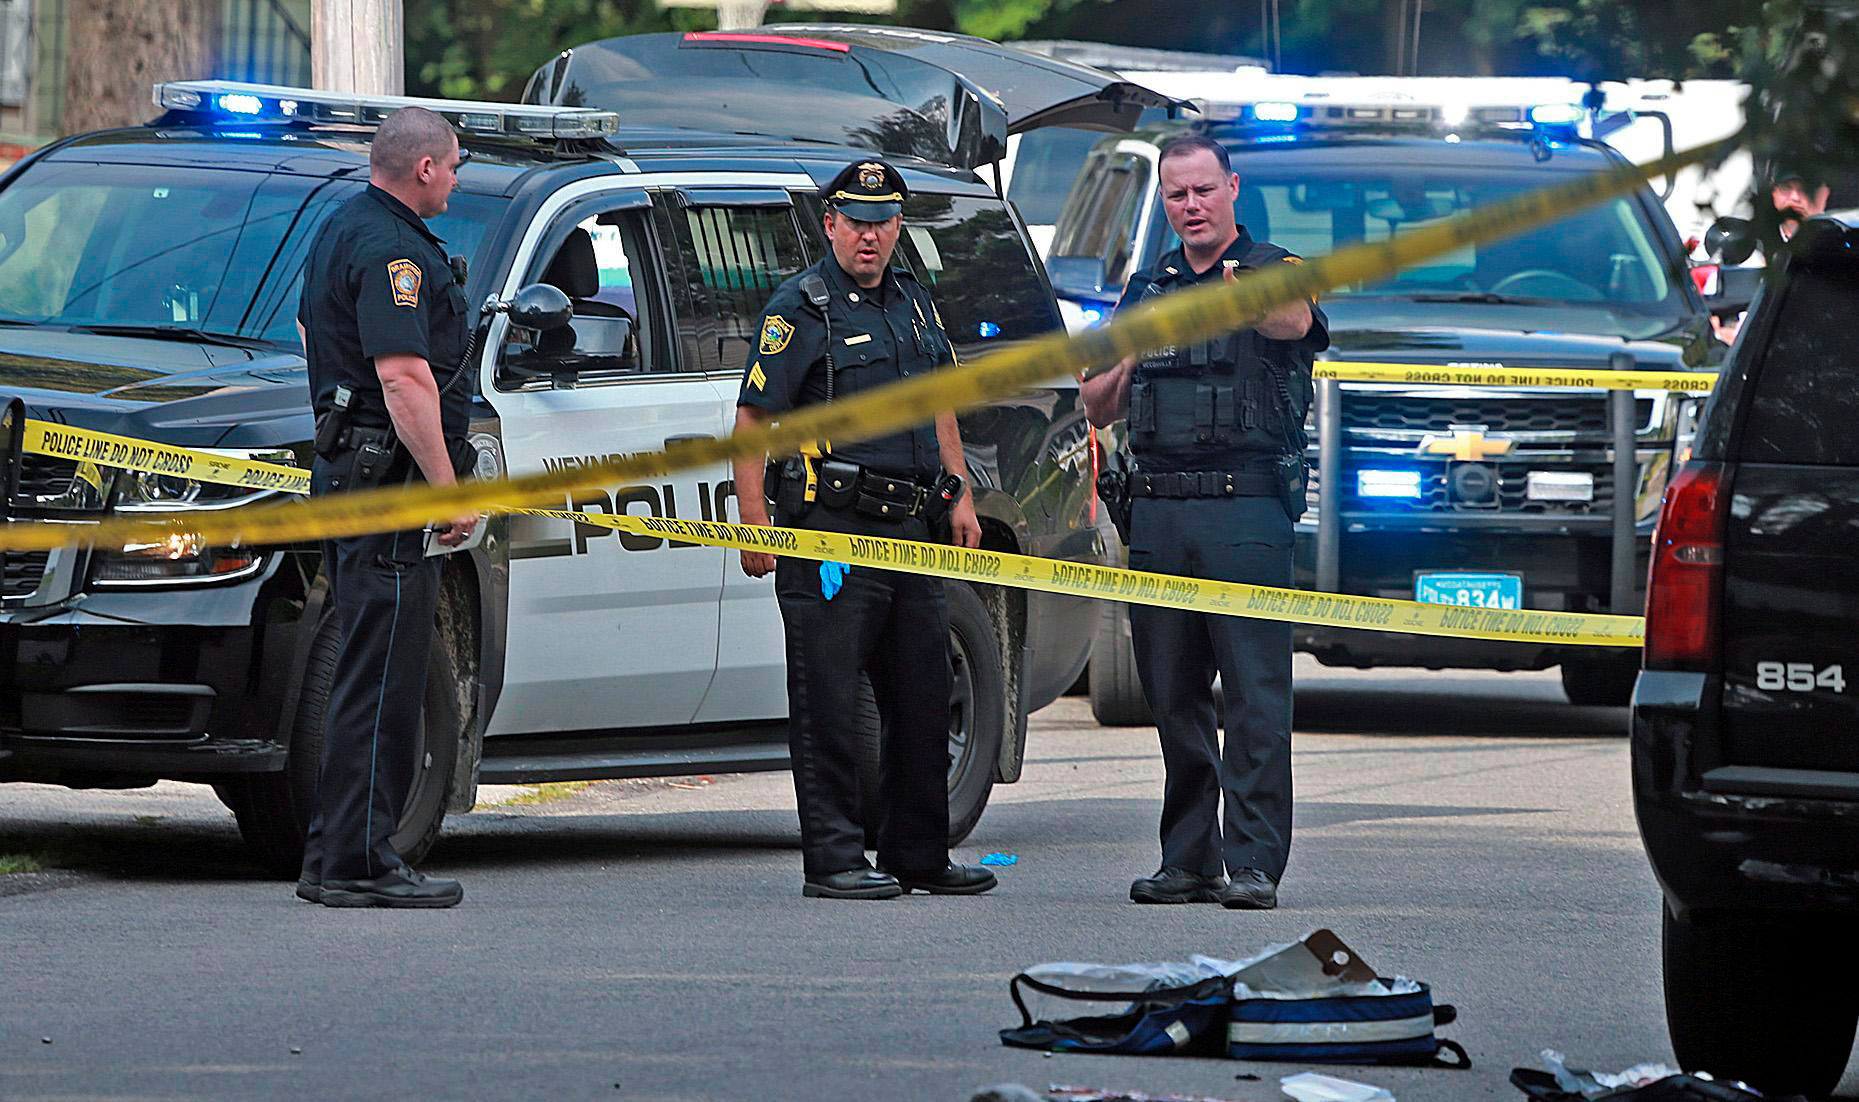 <p>Weymouth Police Officer Michael Chesna was fatally shot Sunday morning after being attacked by a suspect, according to the Norfolk District Attorney's office.</p> <p>Chesna at 7:30 a.m. responded to a report of an erratic driver in the area of South Shore Hospital and saw the suspect actively vandalizing a home. Chesna drew his firearm and commanded the suspect to stop, the district attorney's office said.</p> <p>However, the suspect, identified as Emanuel Lopes, allegedly attacked Chesna with a large stone, striking the officer in the head. Lopes took Chesna's firearm and shot him multiple times in the head and chest.</p> <p>Chesna, 42, was rushed to South Shore Hospital with life-threatening injuries. He and a civilian who was shot as a chase of Lopes ensued both died of their injuries.</p> <p>Chesna was an army veteran and is survived by his wife and two children. He joined the department six years ago.</p> <p>Police departments across Massachusetts are offering condolences to Chesna's family and the Weymouth Police Department.</p>